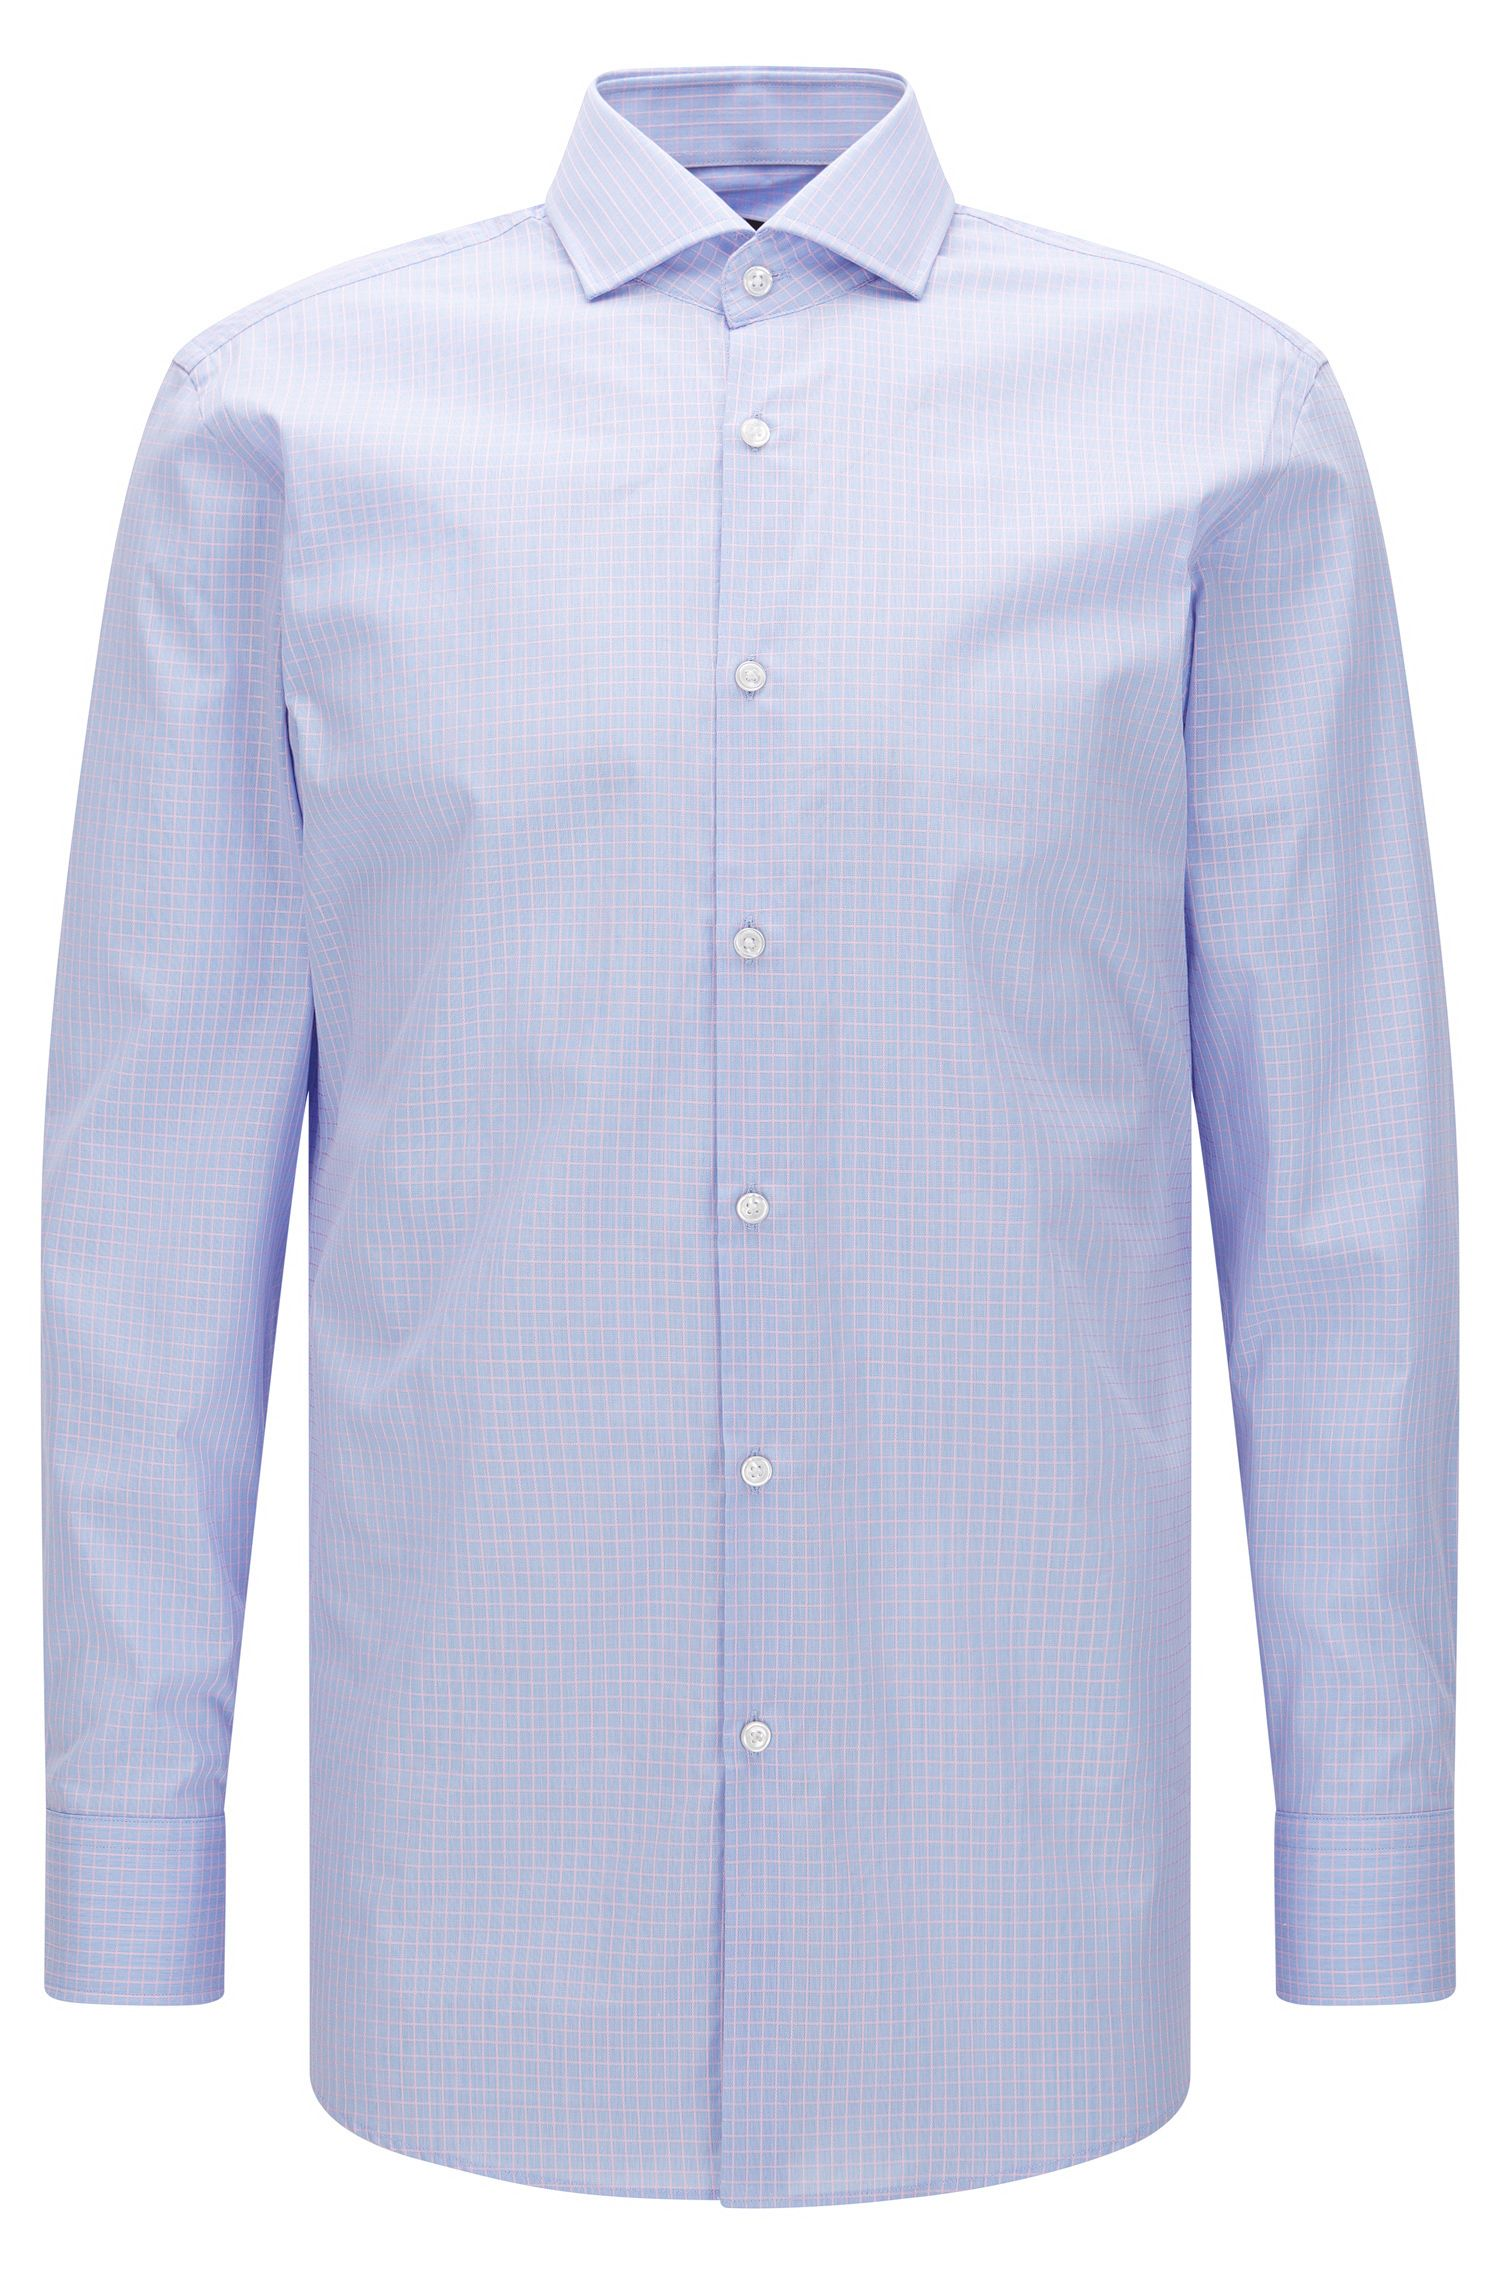 Windowpane Cotton Dress Shirt, Sharp Fit | Mark US